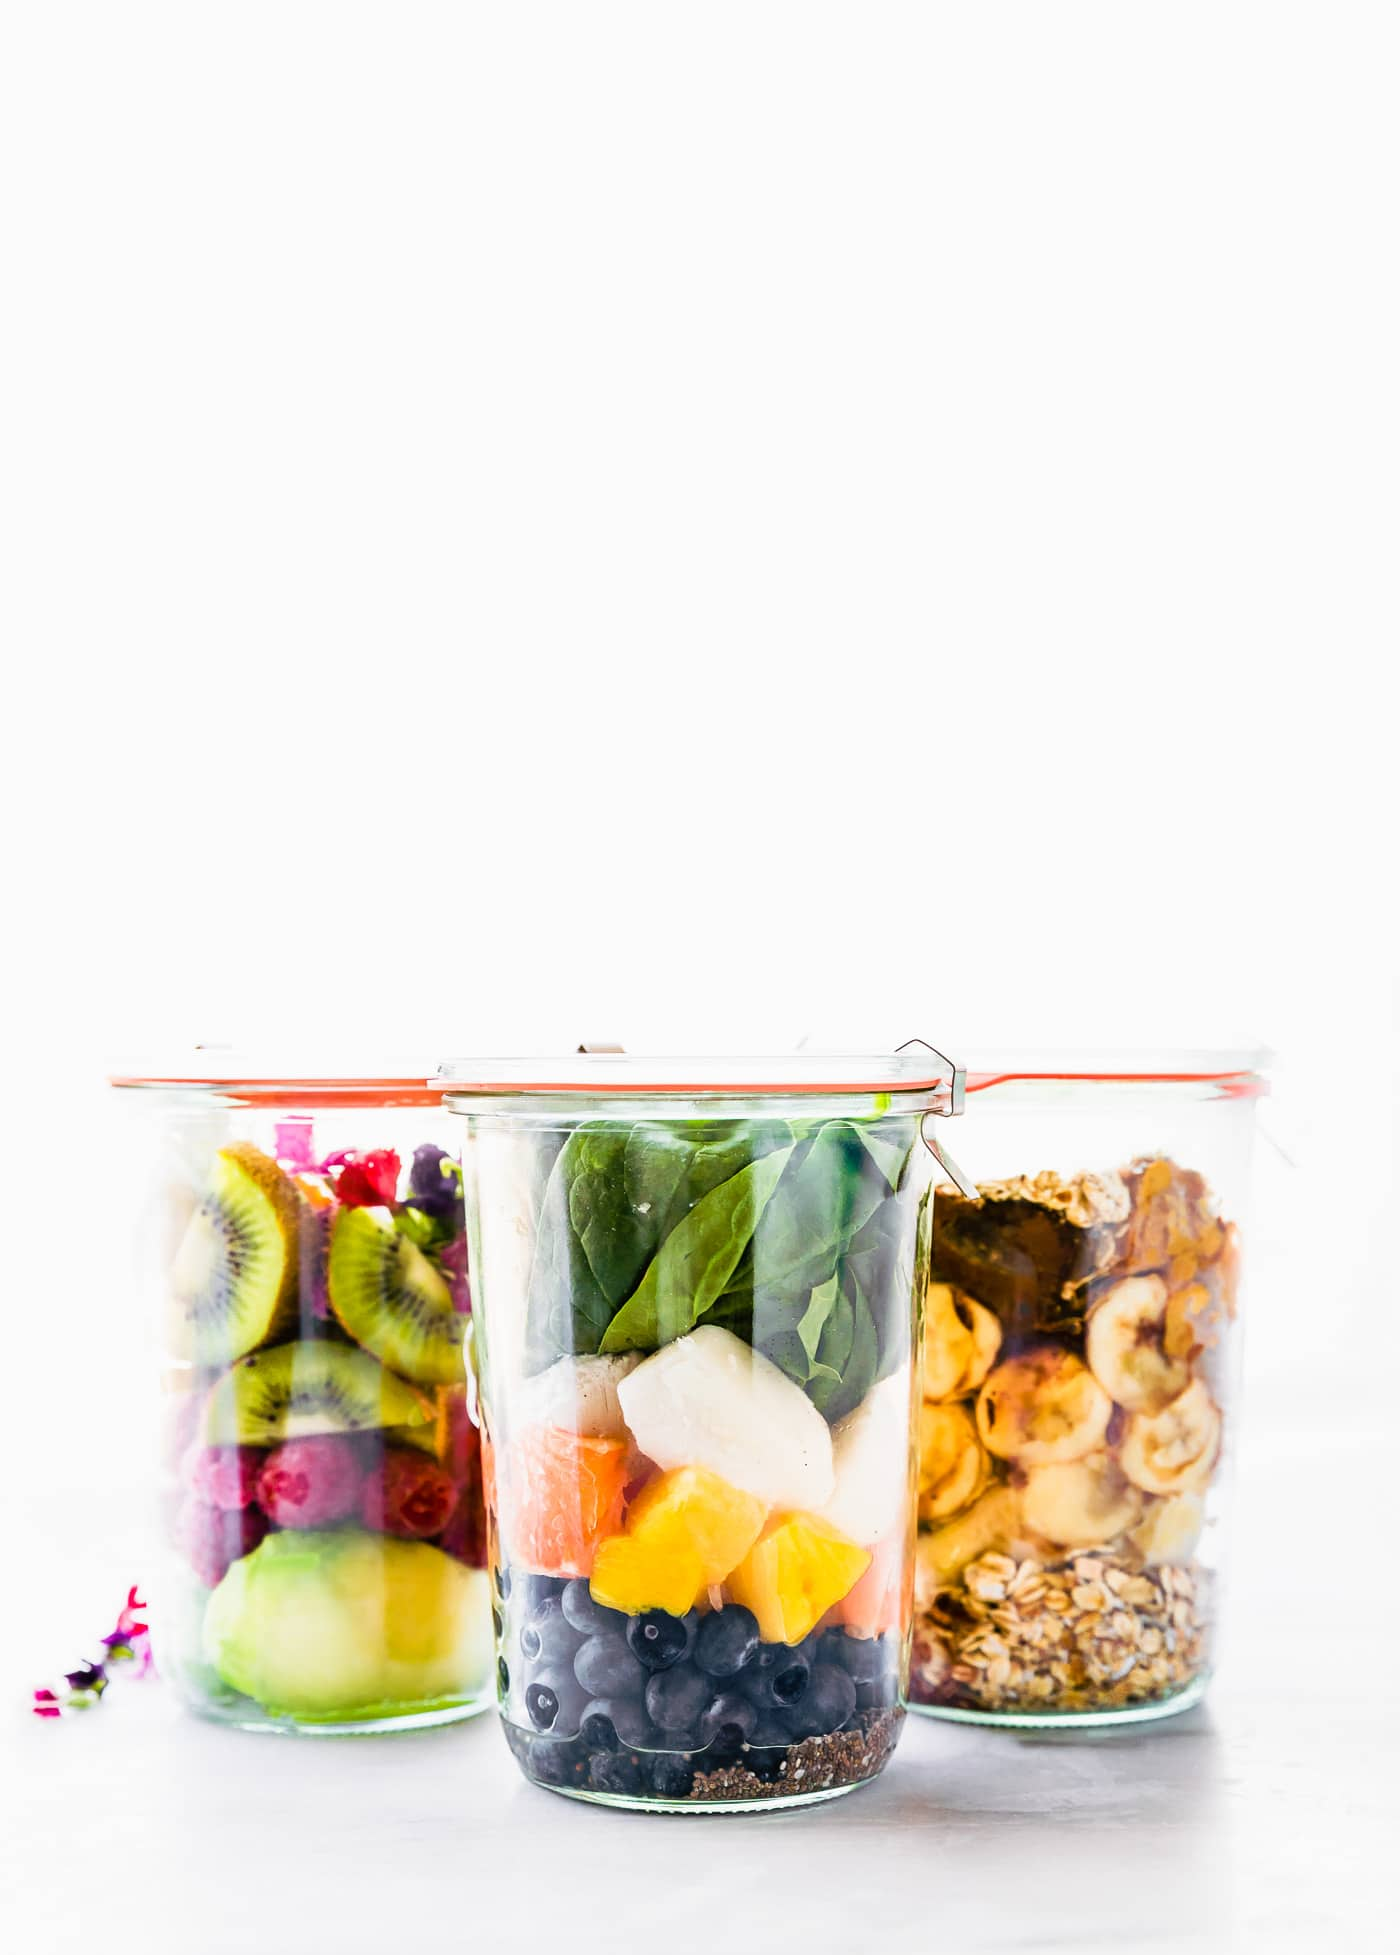 Can Smoothies be made a day in advance? You betcha! These 3 Make-Ahead Smoothie Packs are made using a variety of fruit, greens, collagen protein, and other nutrient-rich ingredients. Just fill your container, label, then freeze. When you're ready for one of these Protein Rich Smoothies; Detox smoothie, Energize smoothie, or Beautify smoothie, simply blend, pour back in the cup and go!.